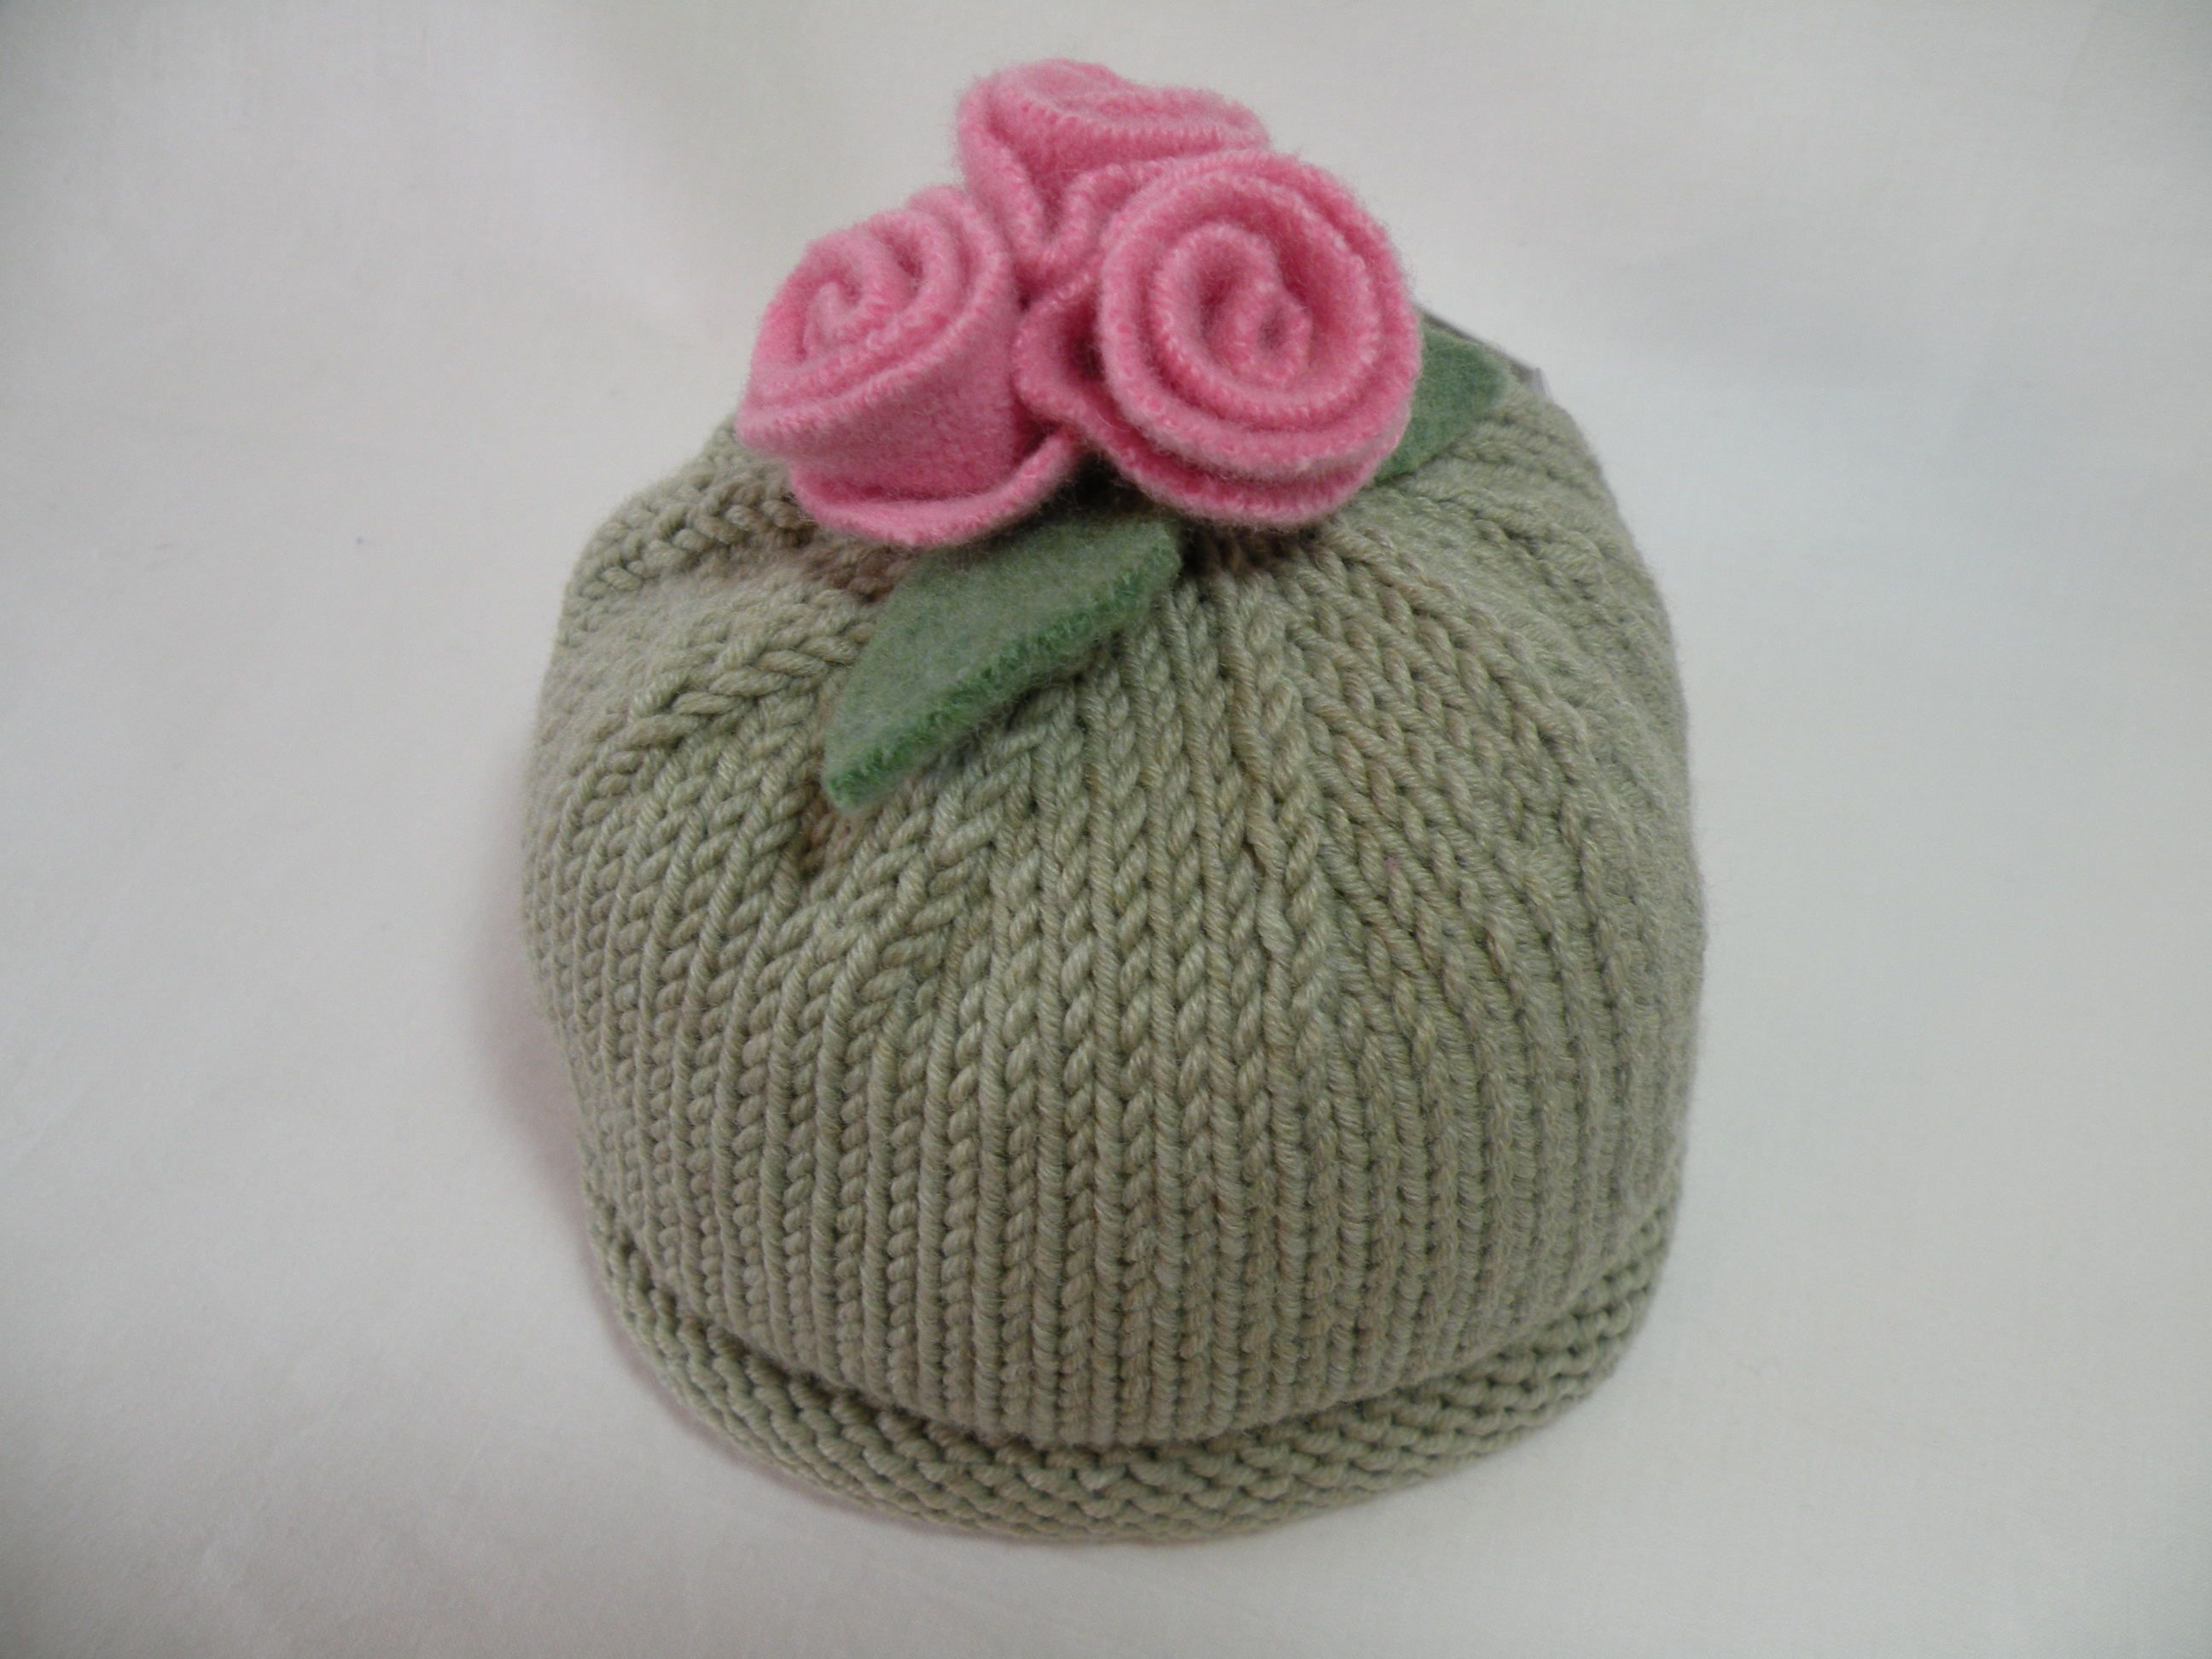 Knitting Patterns For Mittens And Hats : 1000+ images about Knitting - hats, mittens, slippers on Pinterest Knit bab...